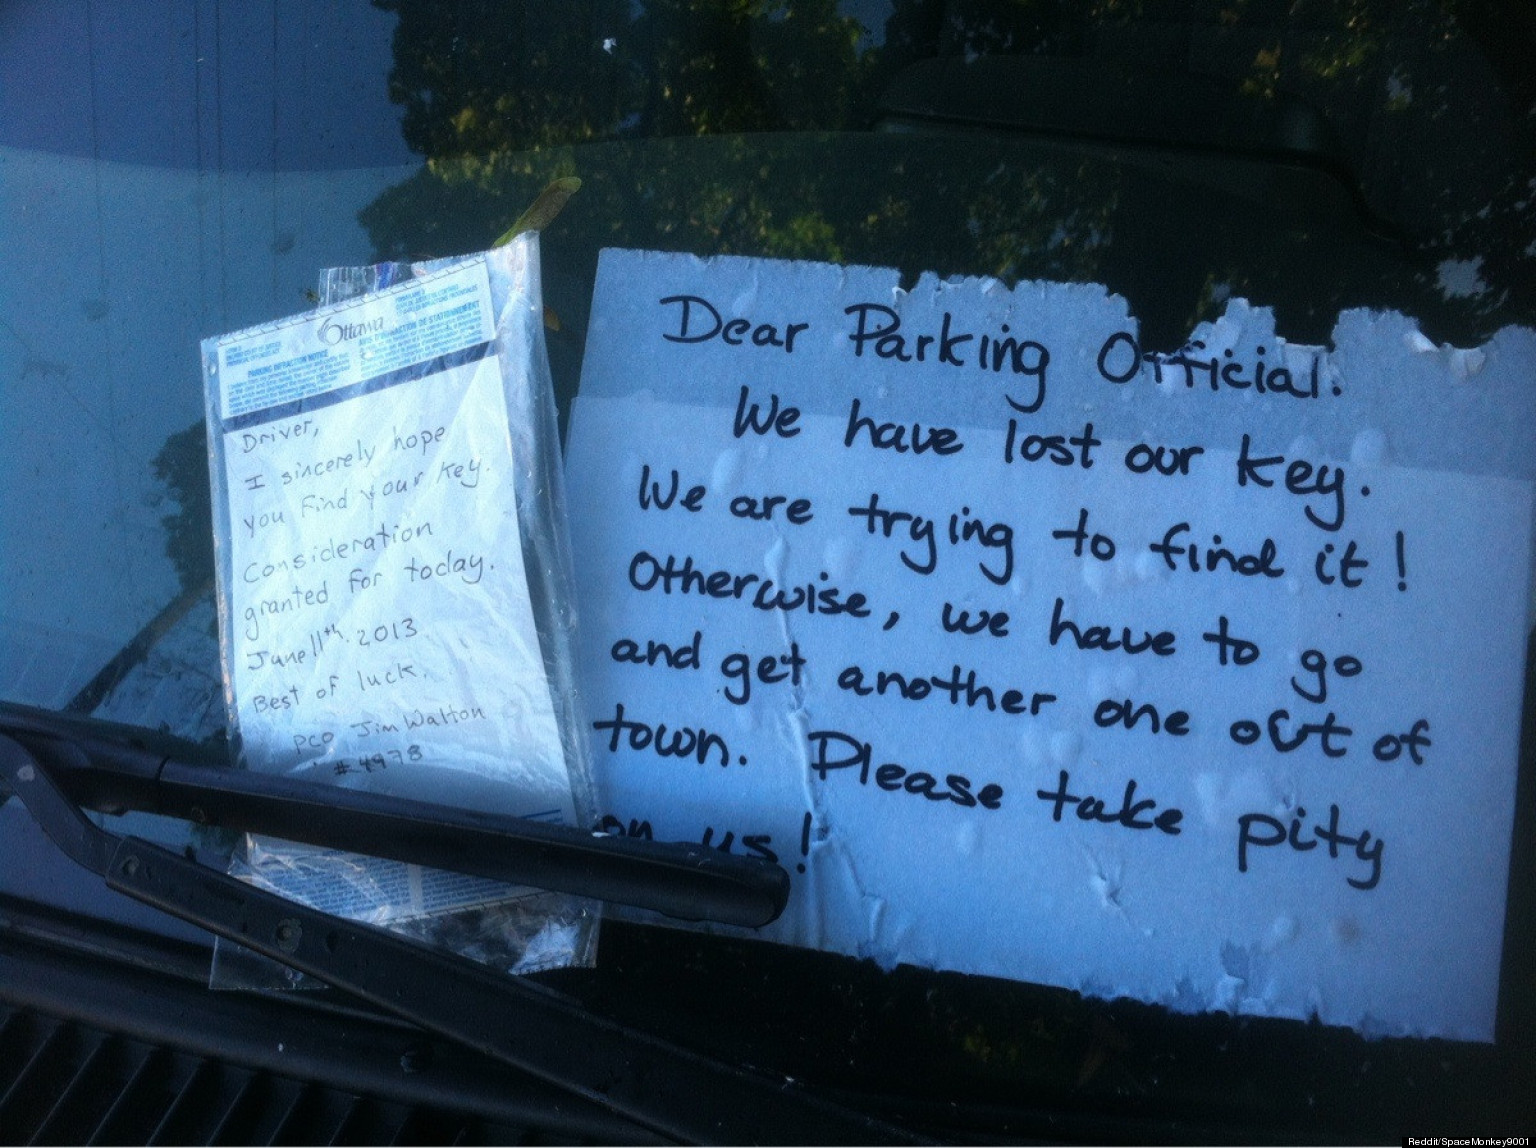 I Locked My Keys In My Car >> Kind Note Will Restore Your Faith In Parking Officials (PHOTO) | HuffPost